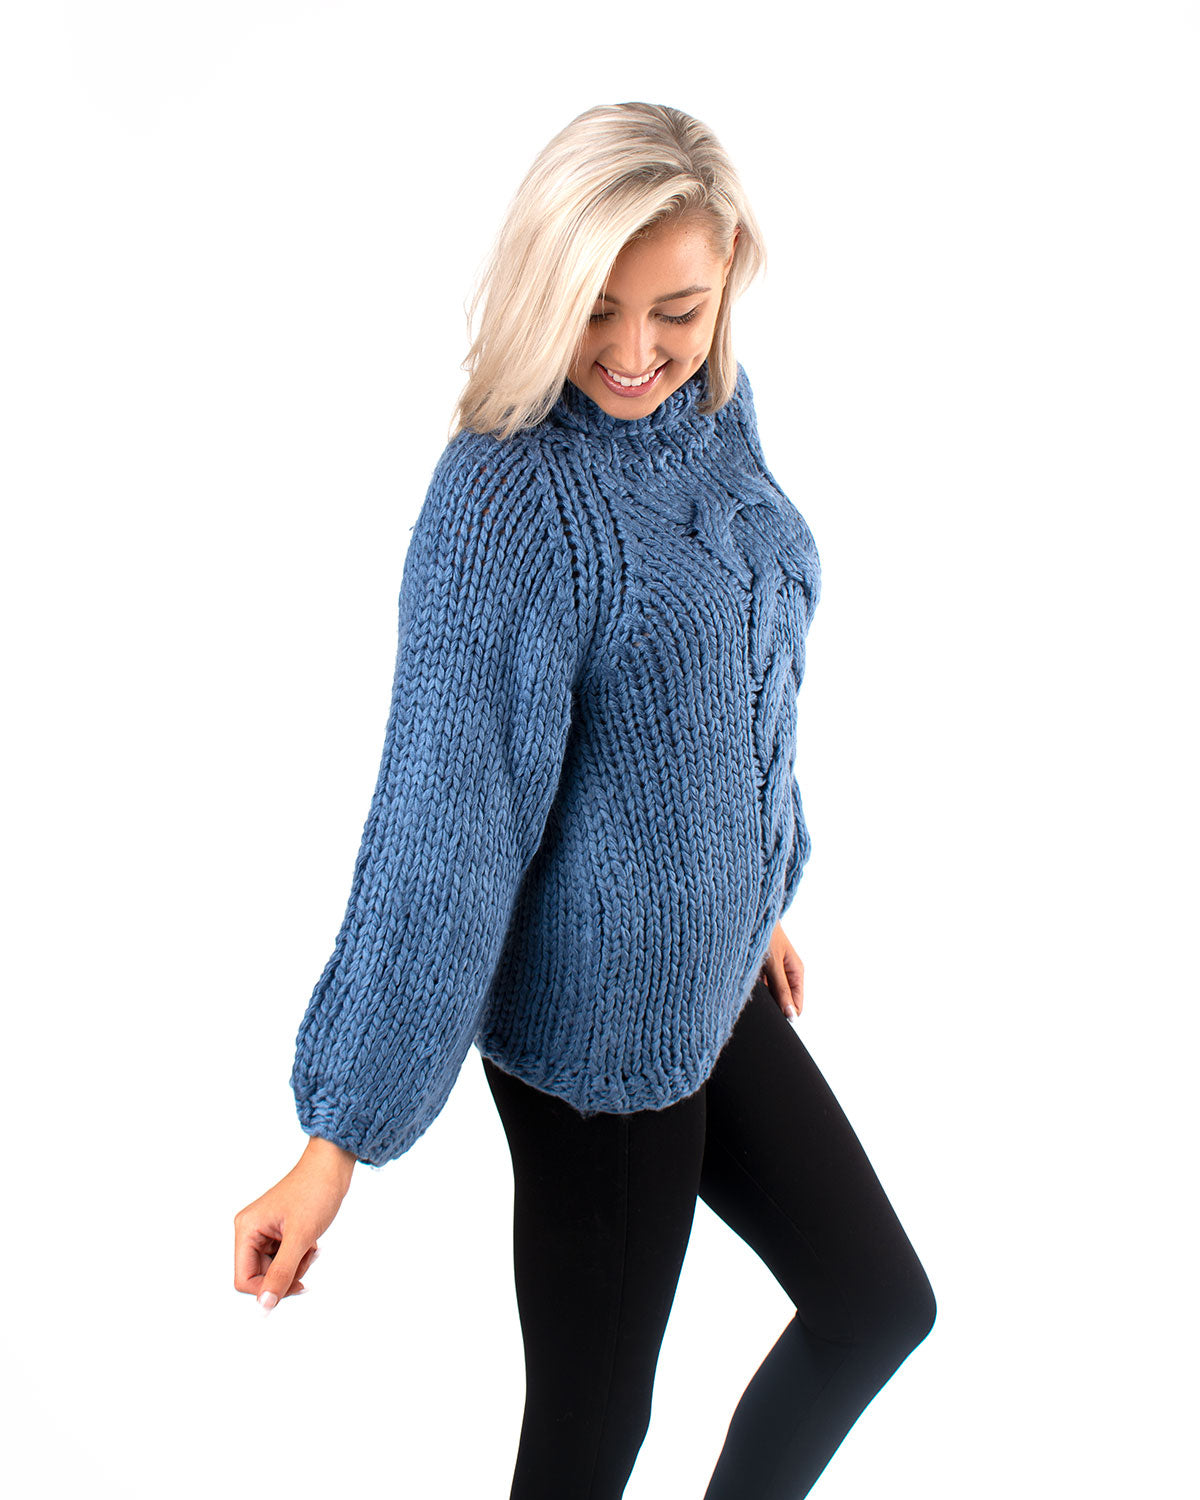 Chunky Cable Knit Pullover Sweater